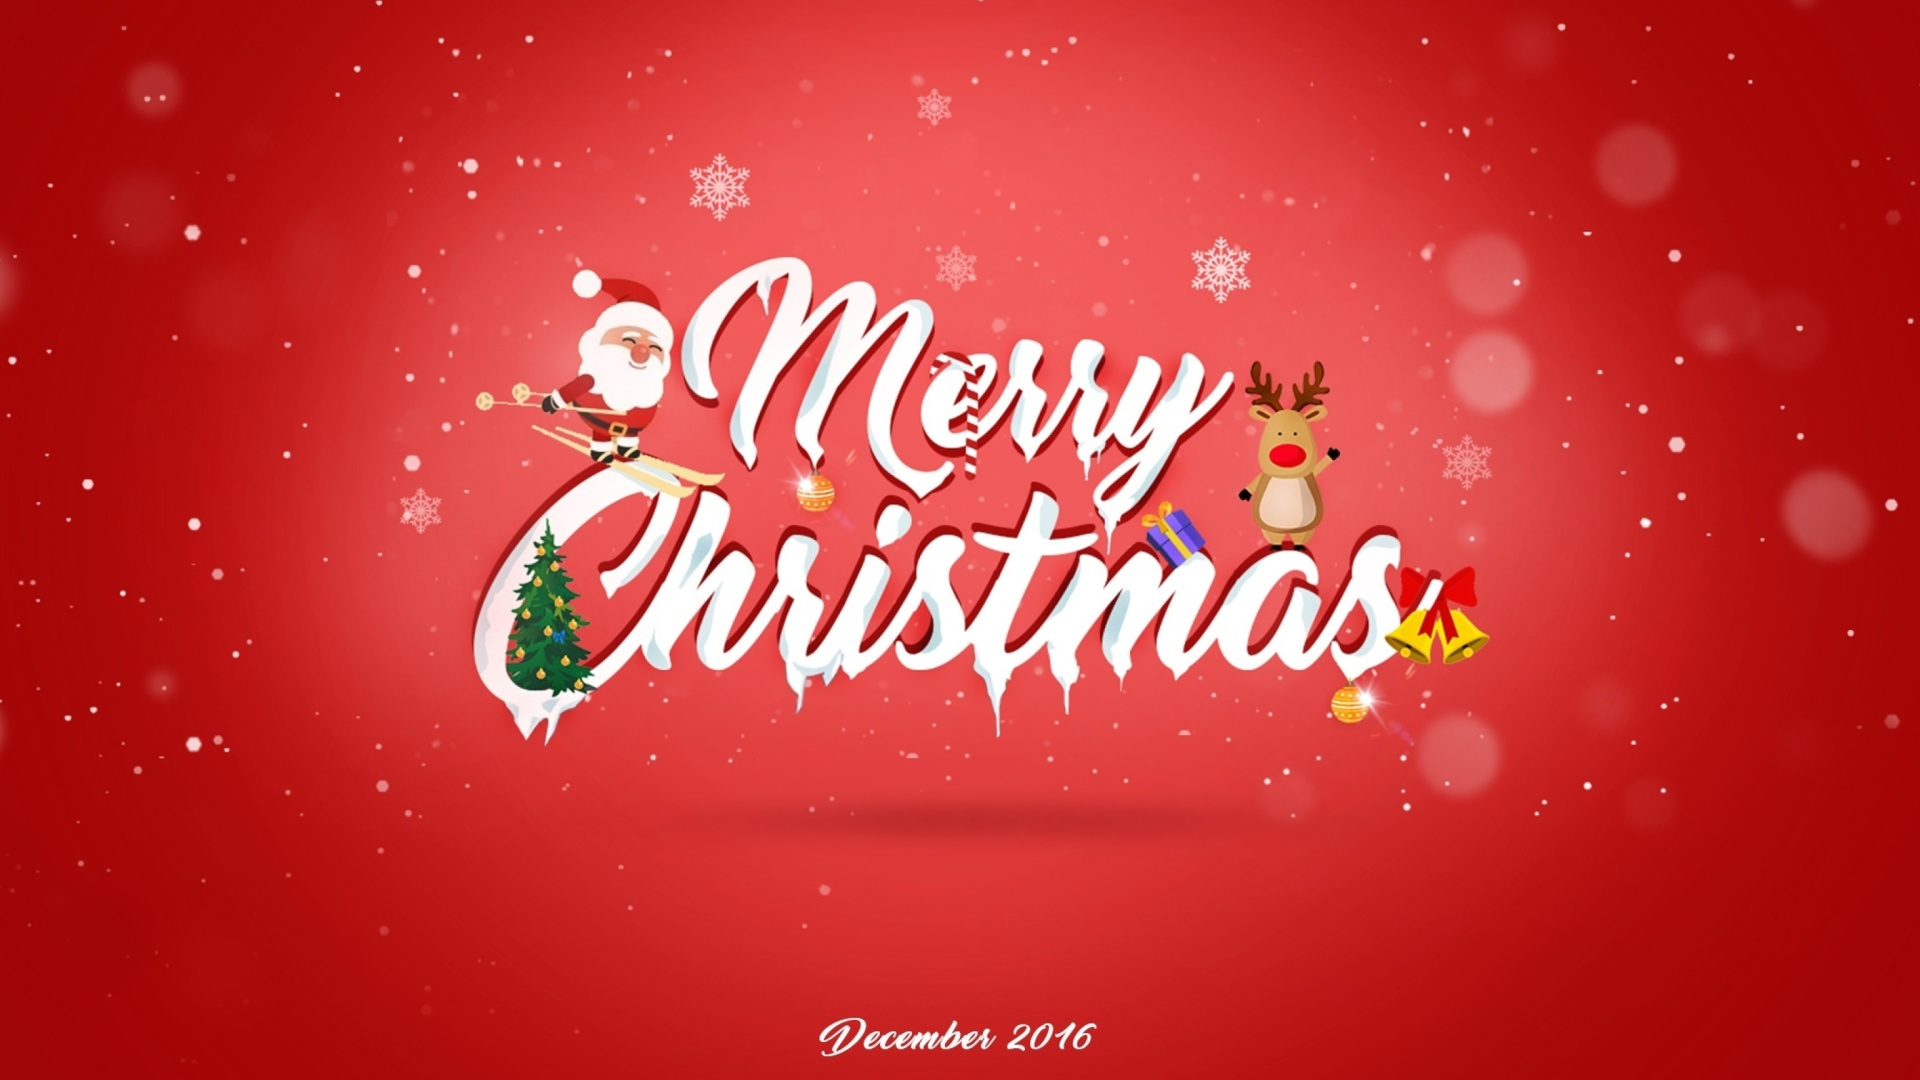 Christmas Calendar 2016 : Merry christmas calendar wallpaper for